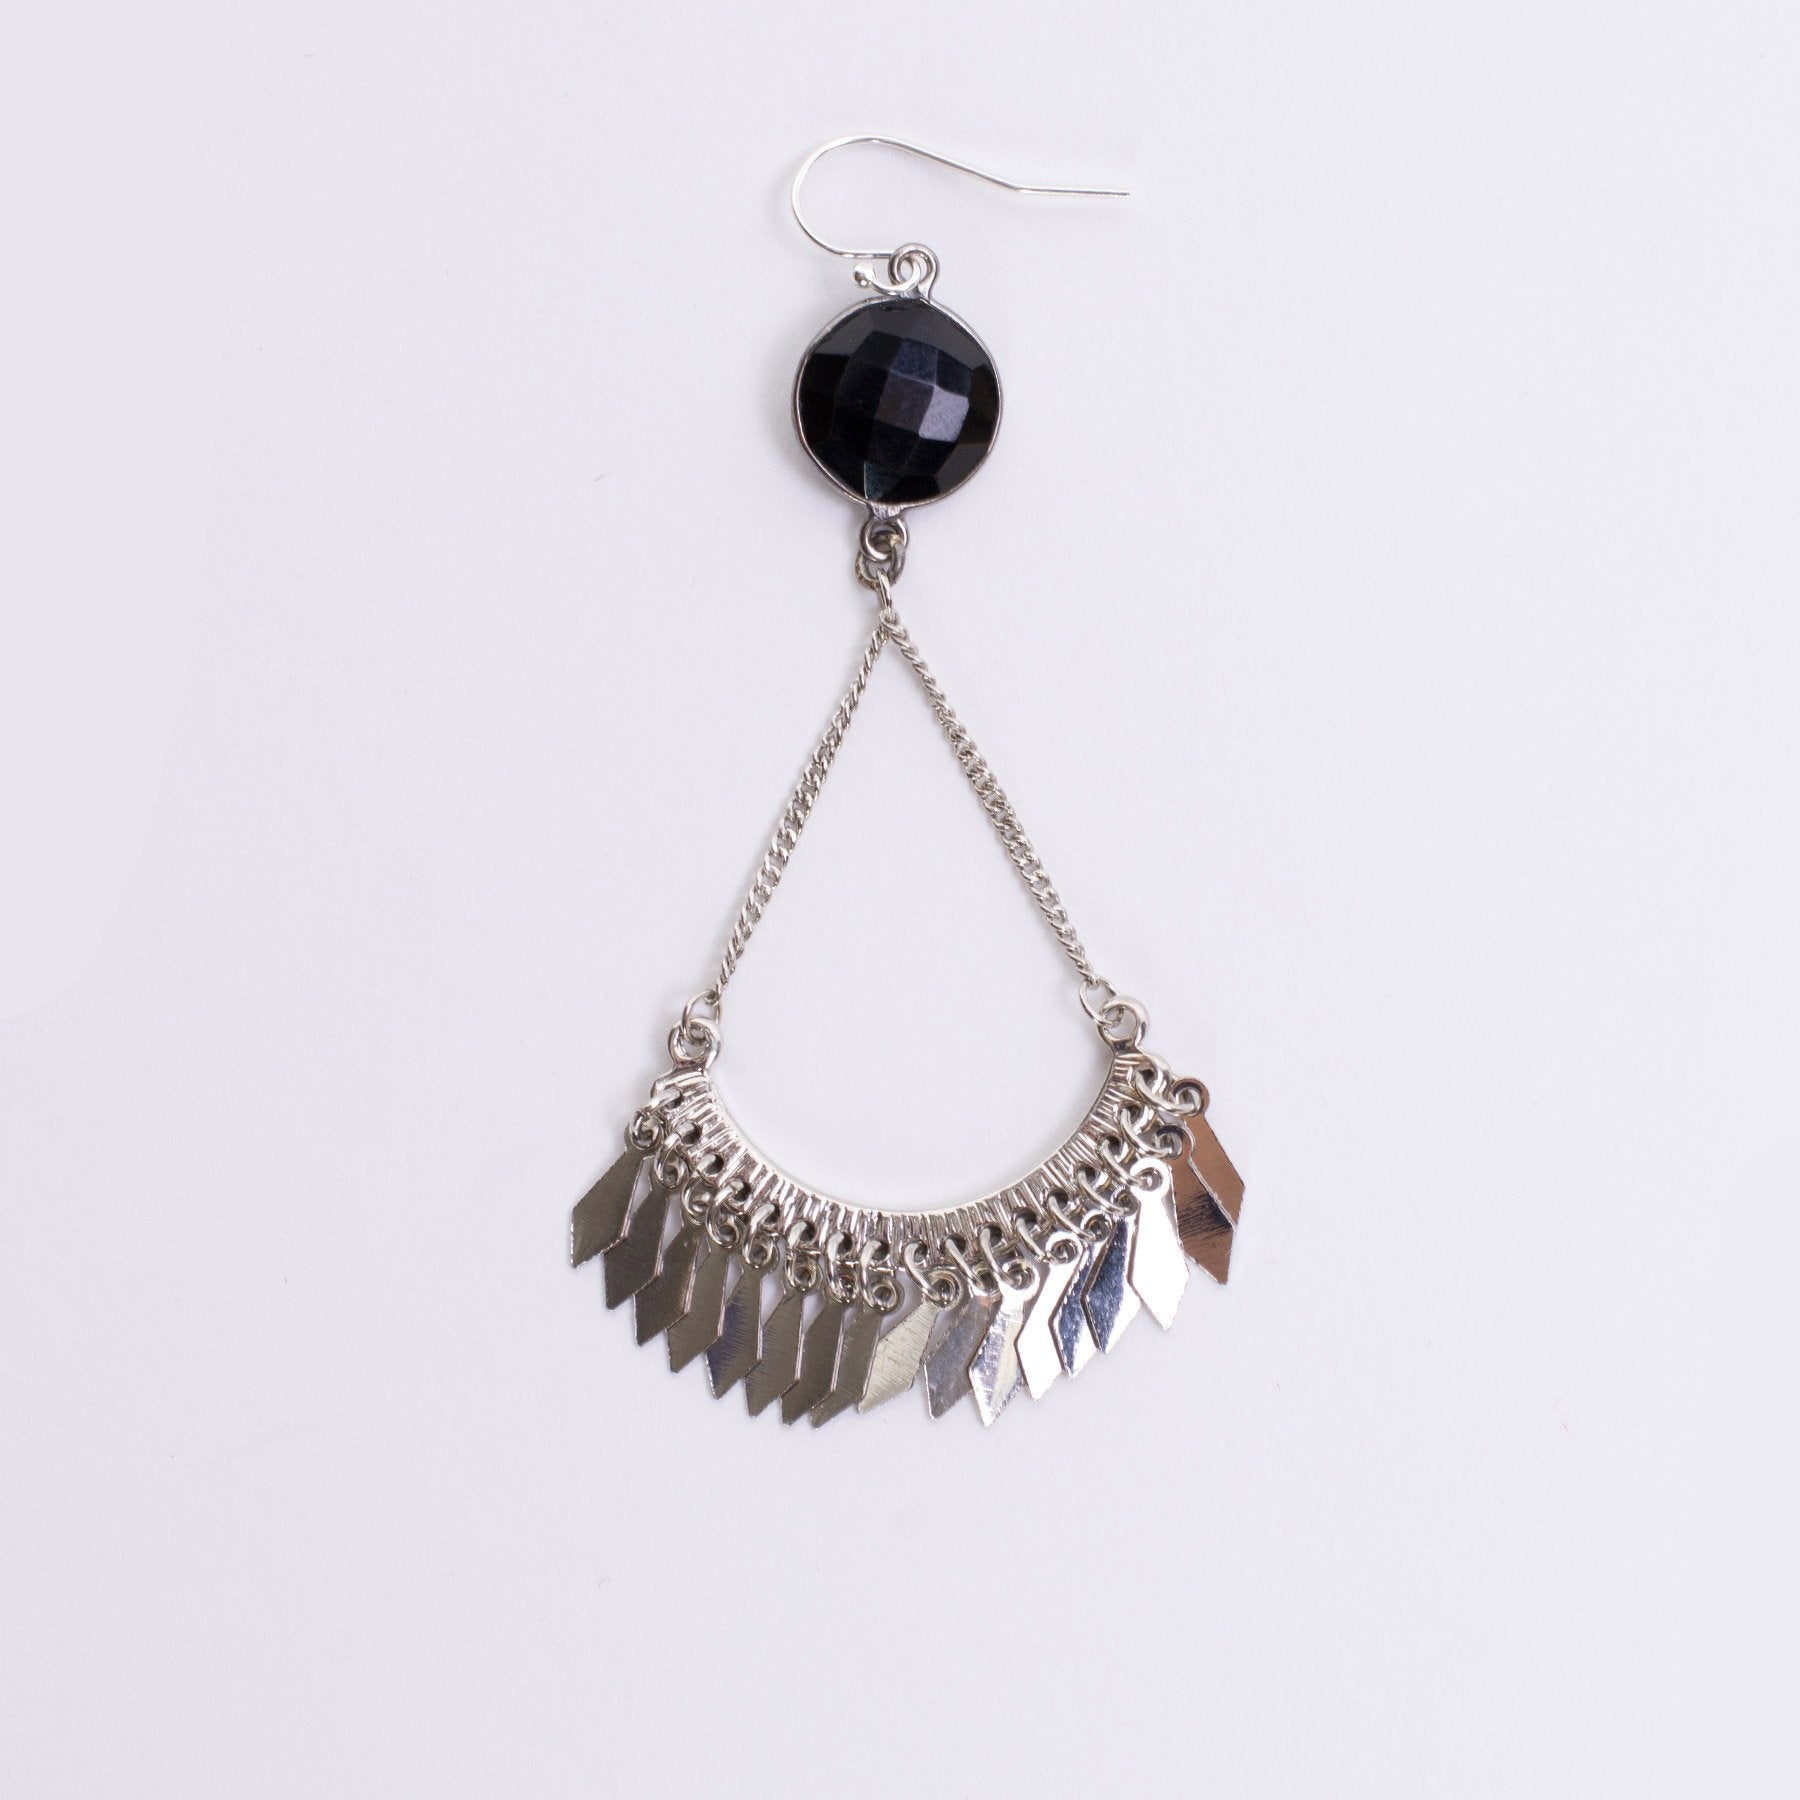 close earring kloiber jewelers of silver dangle earrings sterling jewelry onyx item view up